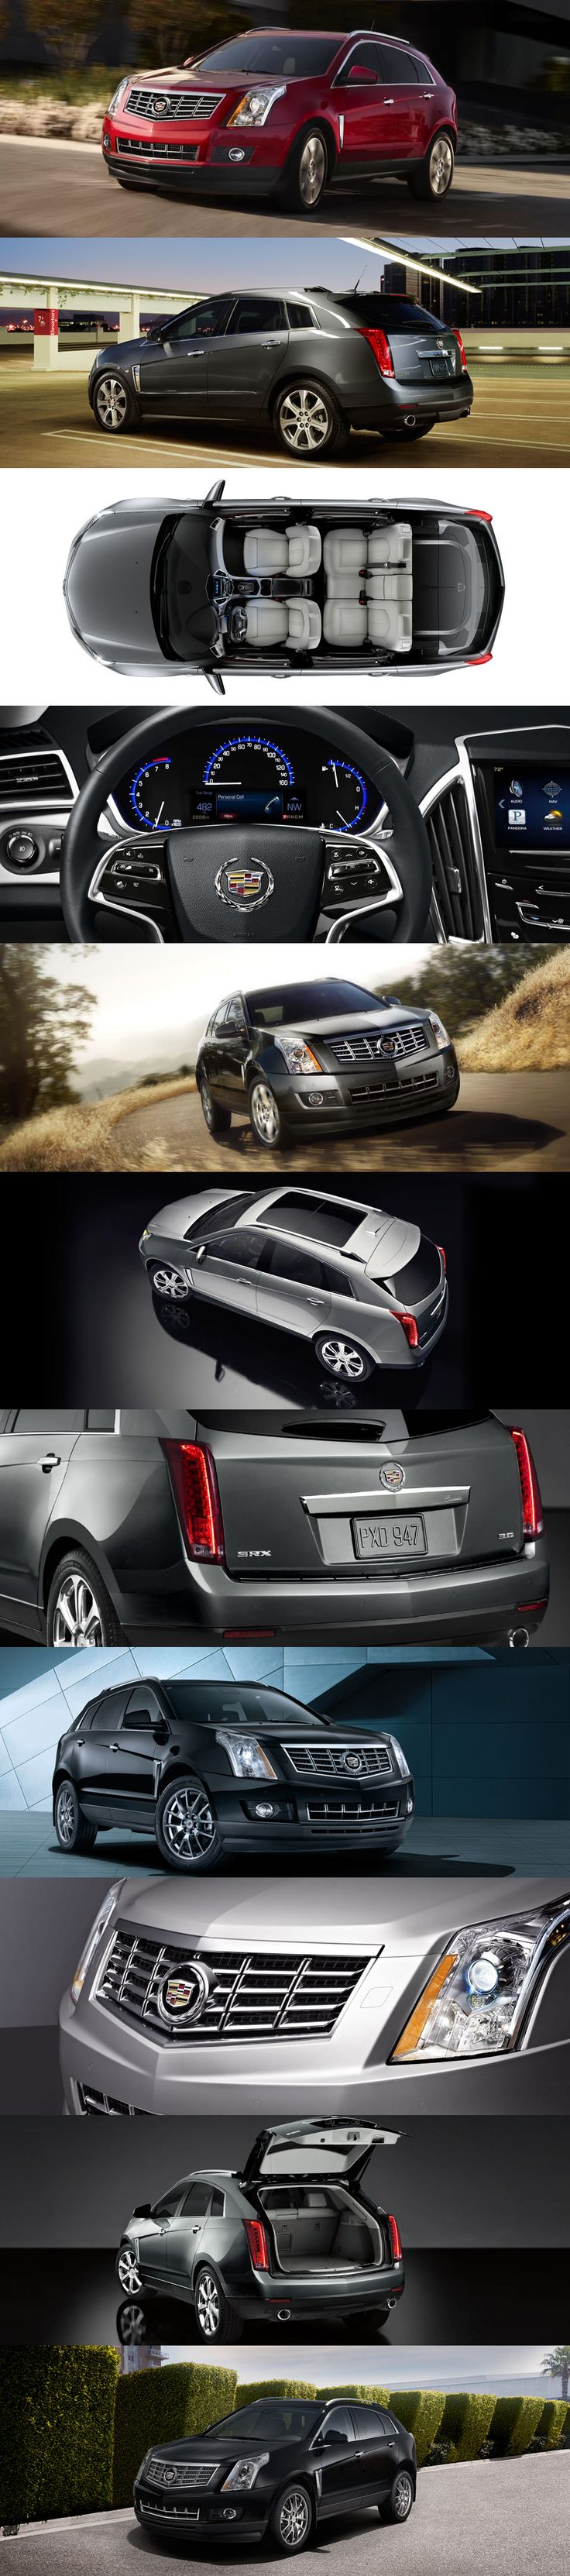 CADILLAC 2013 SRX CROSSOVER- someday I will have this car!